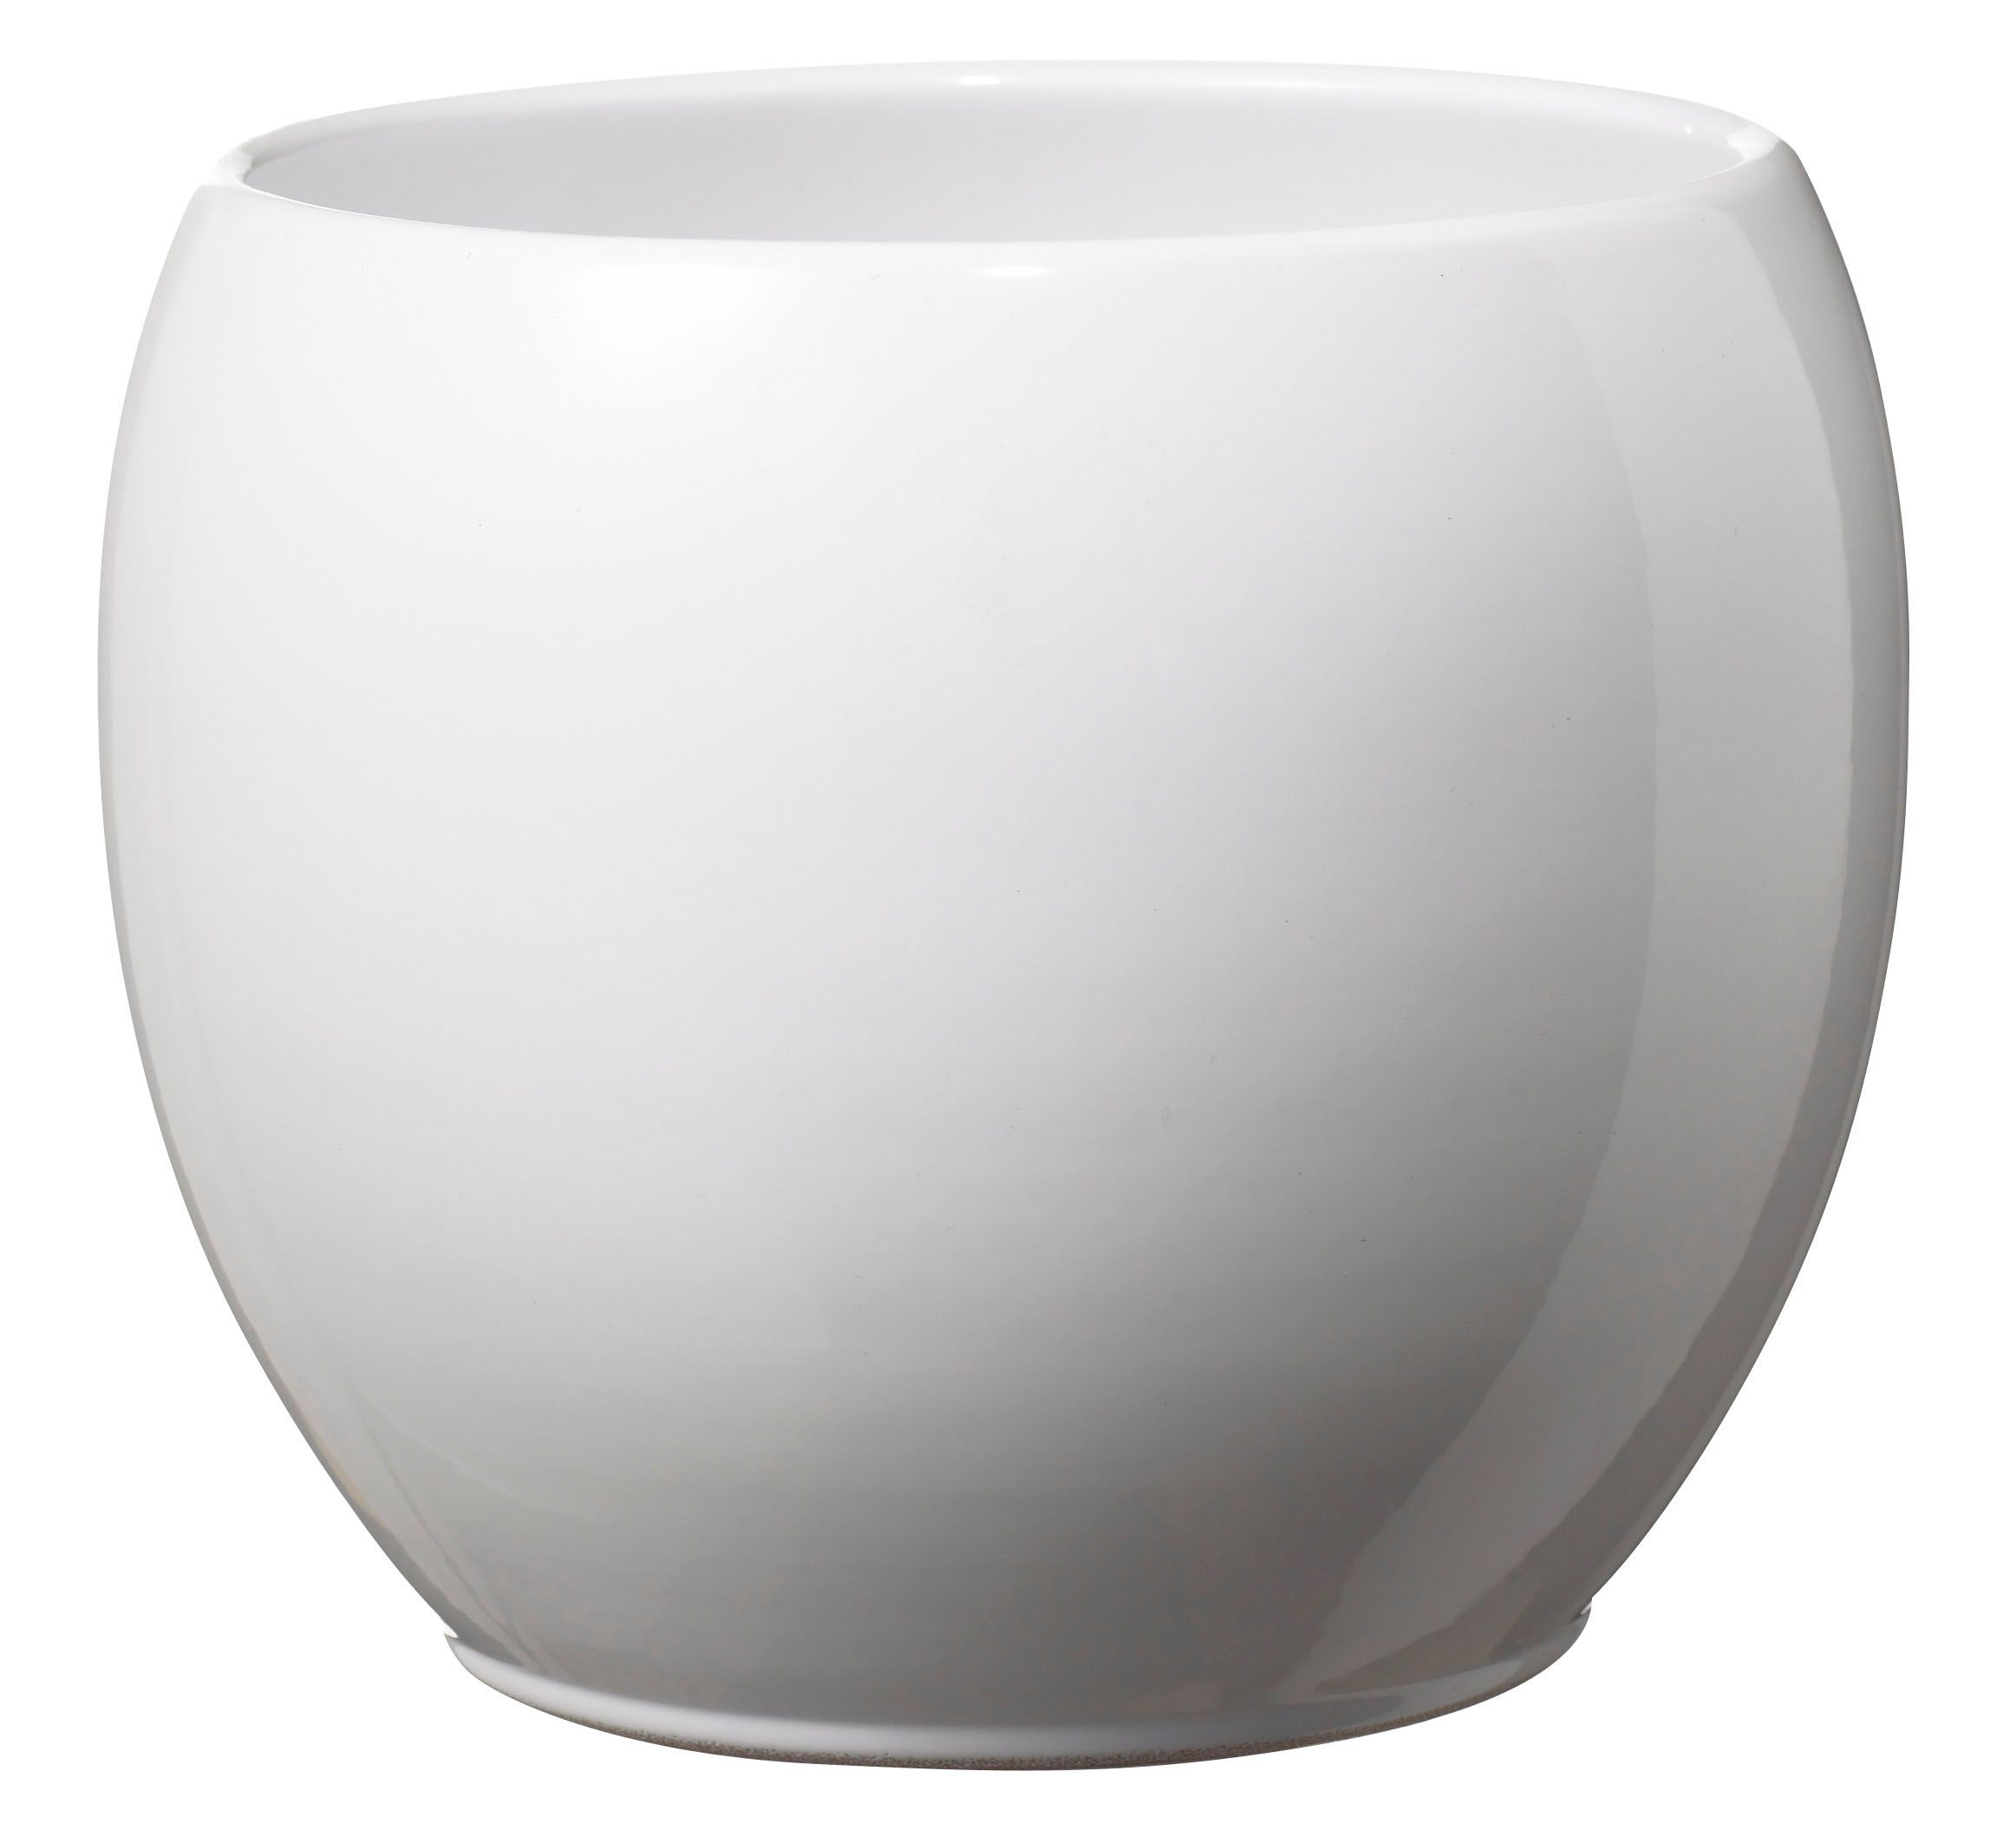 alberta round ceramic white plant pot h130mm dia150mm white